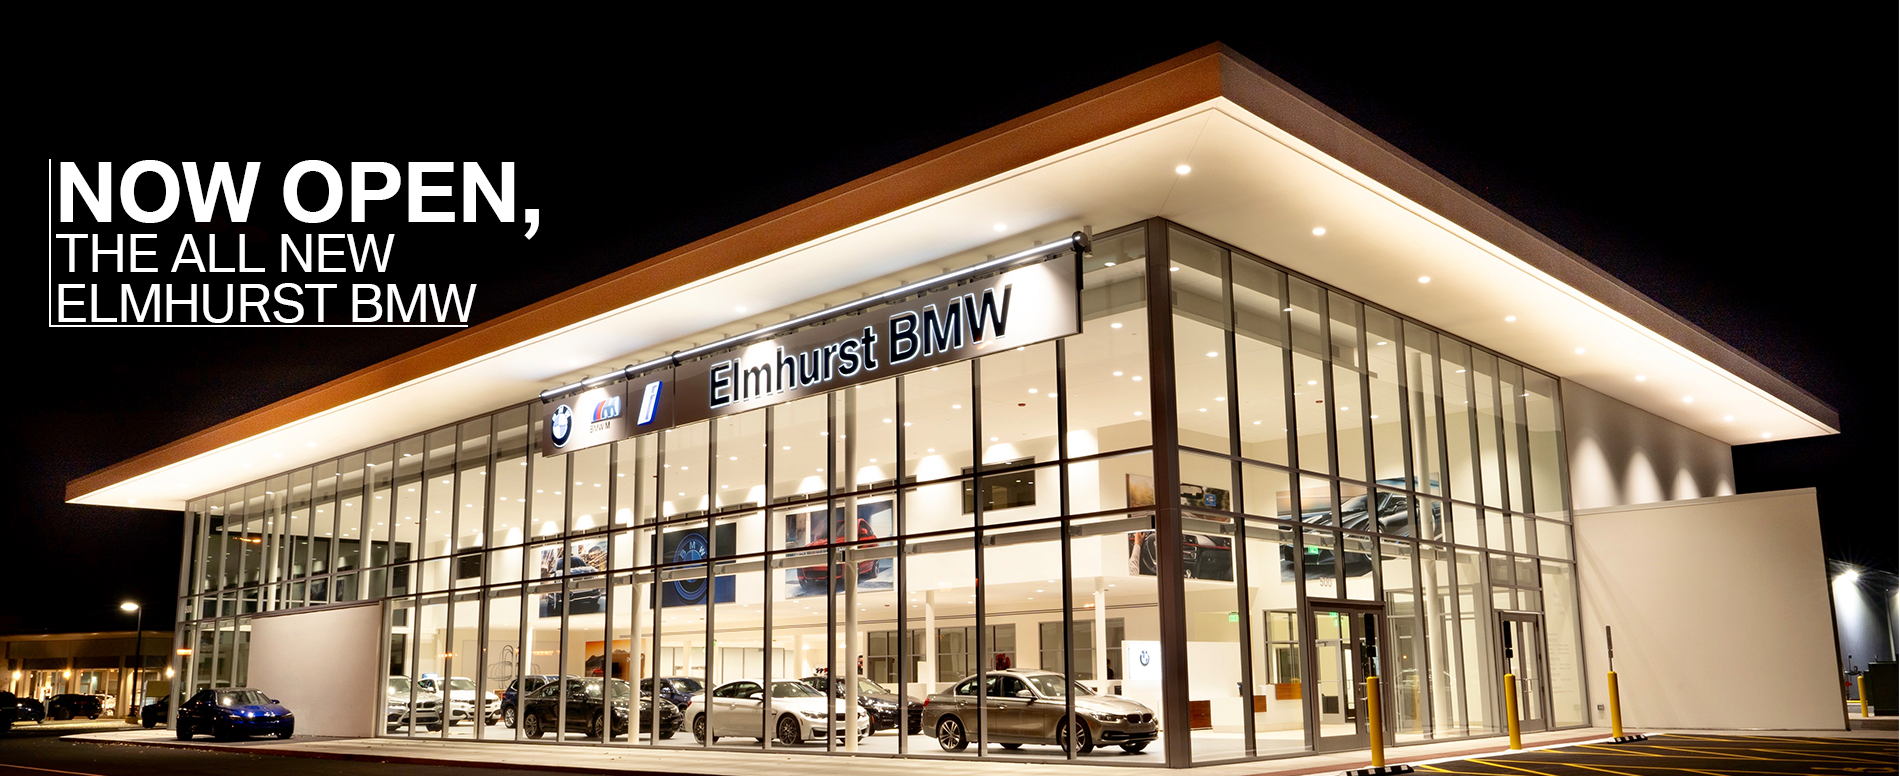 Elmhurst Bmw A Bmw Dealer Serving Chicago